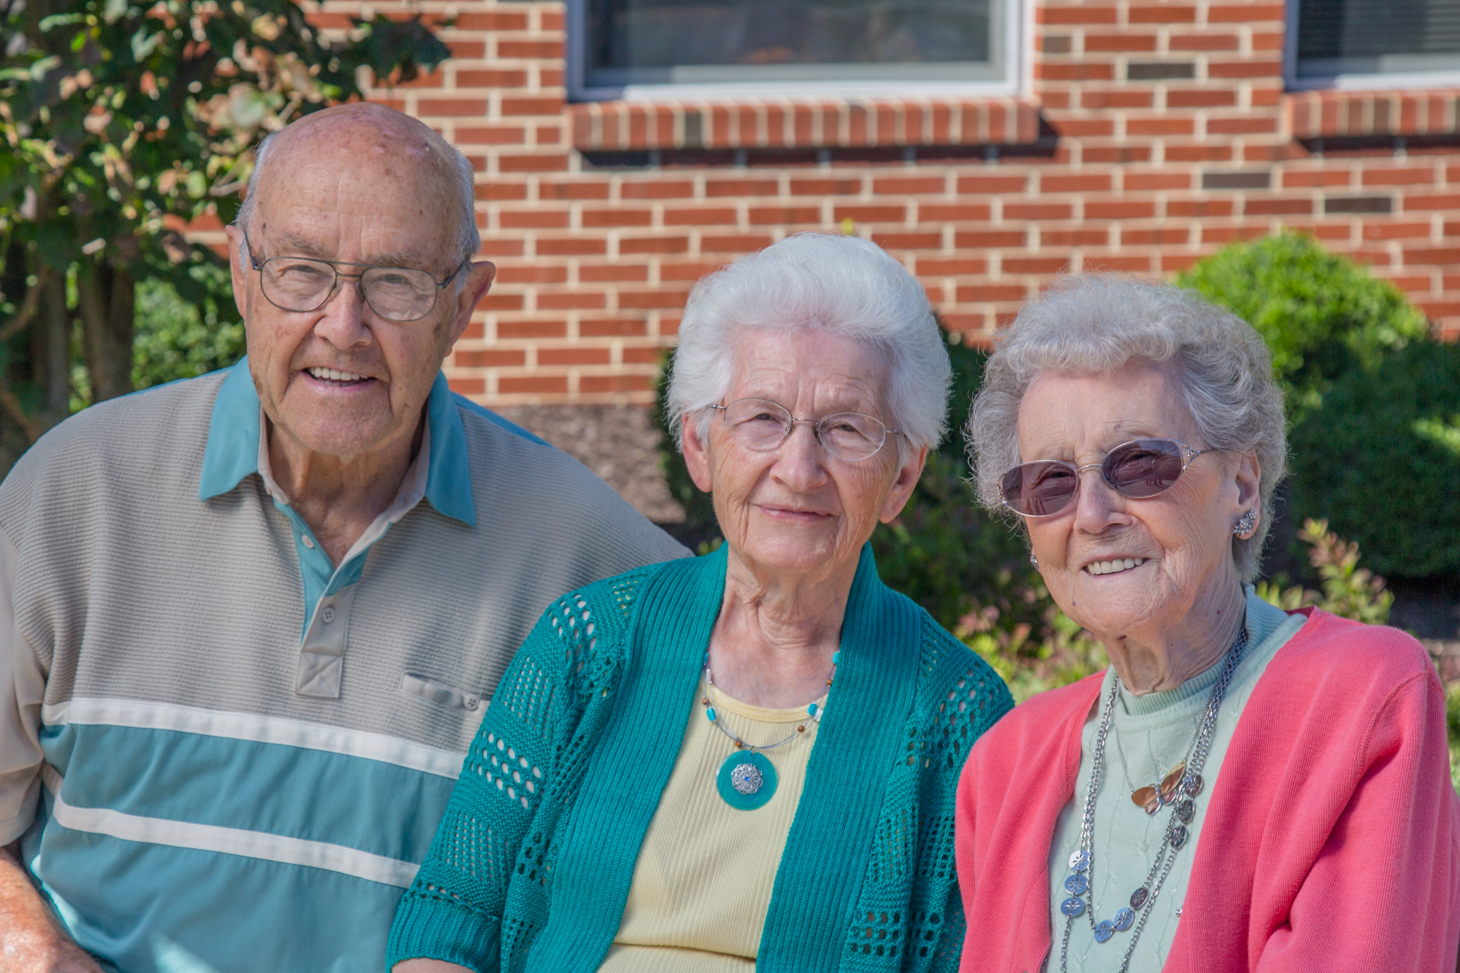 Community Life at United Zion Retirement Community in Lititz, PA